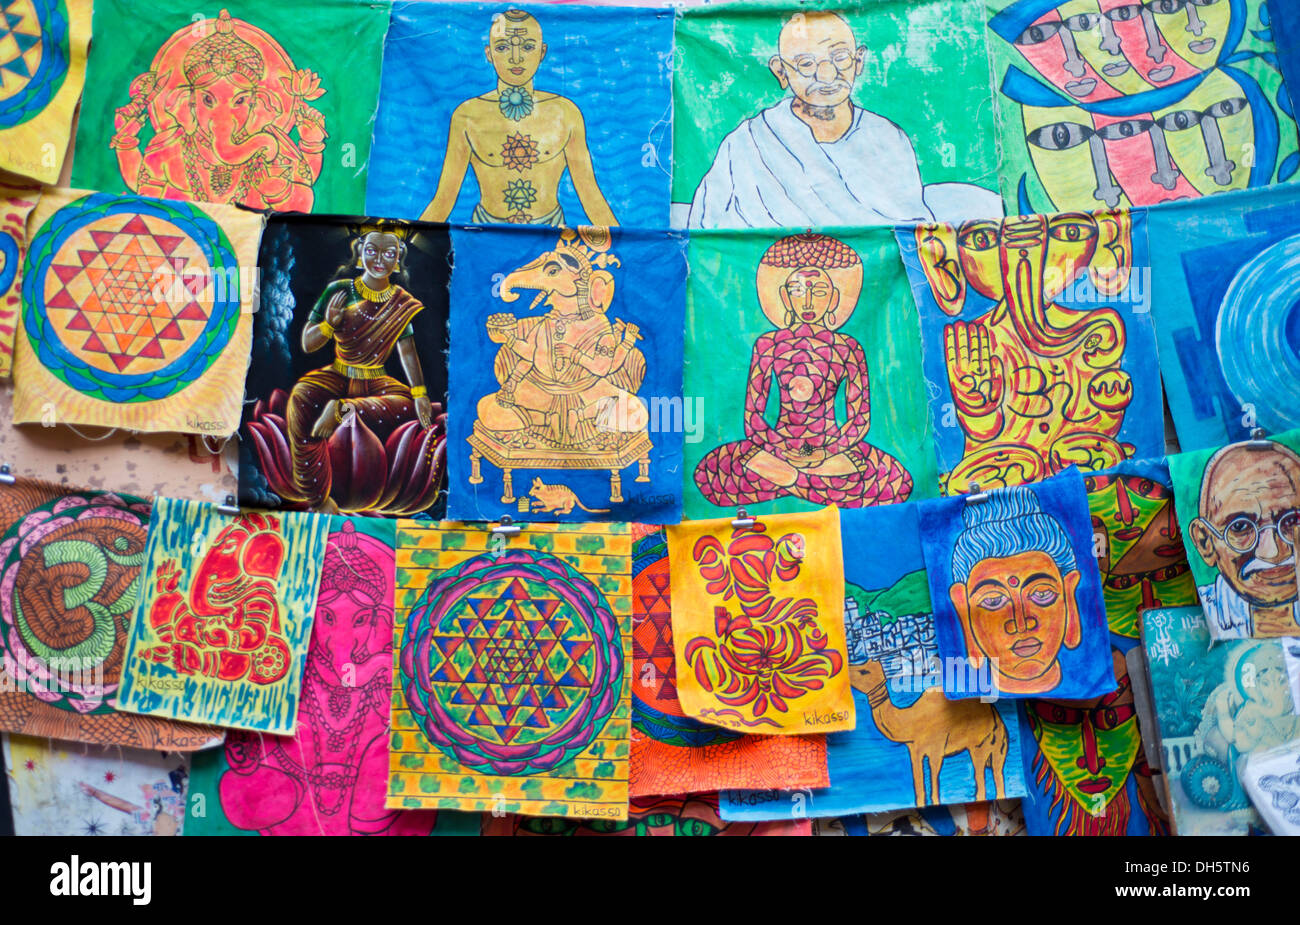 Depictions of gods and men, mandalas and ornaments, for sale, Pushkar, Rajasthan, India - Stock Image